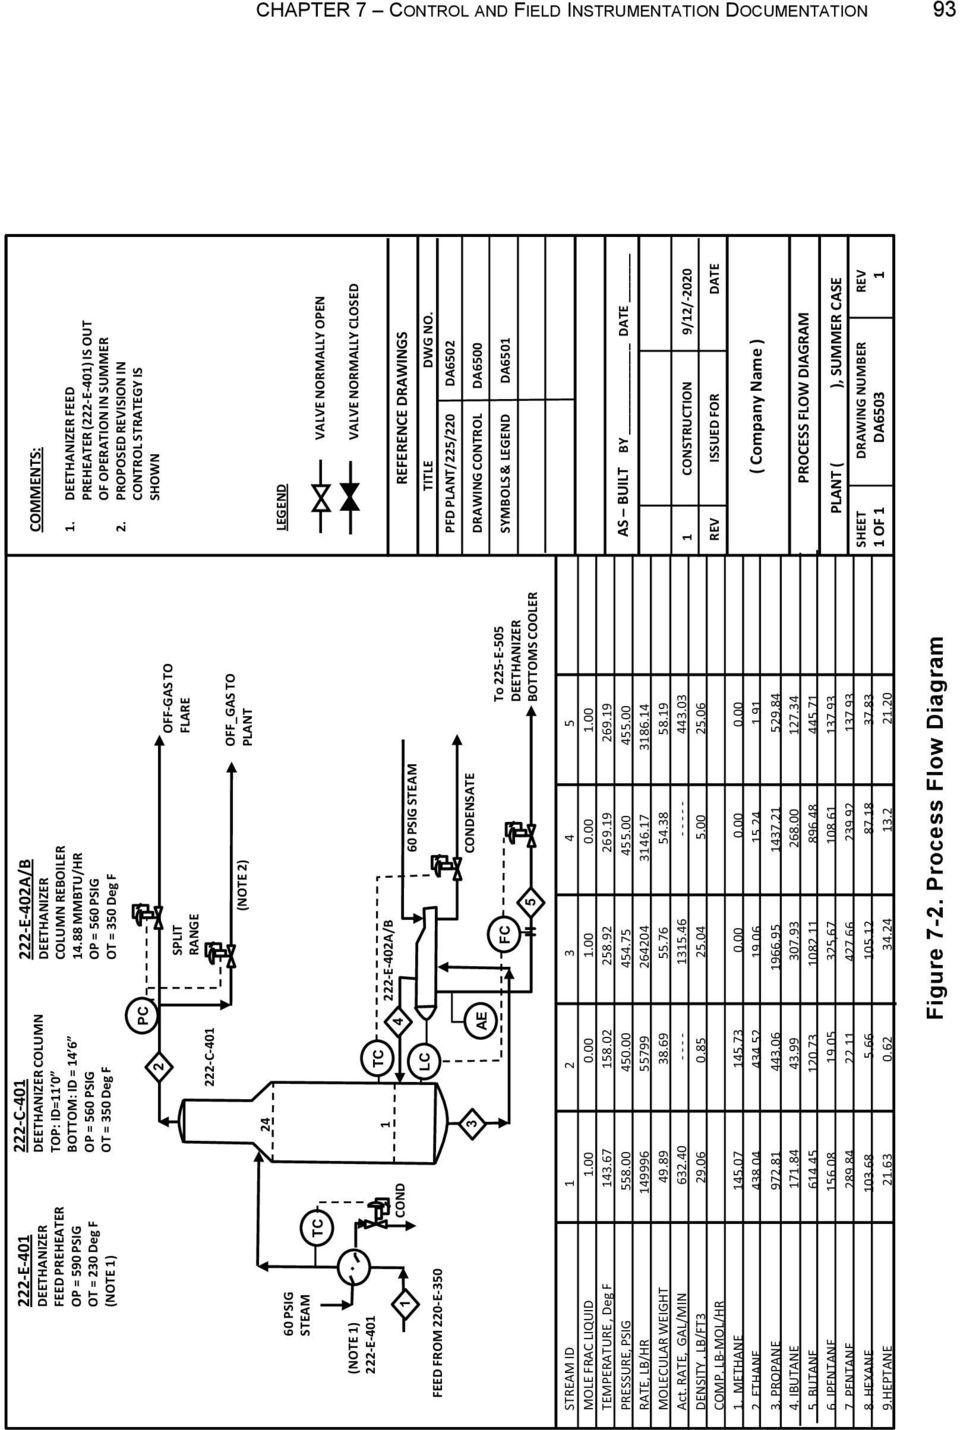 7 Control And Field Instrumentation Documentation Pdf Schematic Drawing Rev 4 88 Mmbtu Hr Op 560 Psig Ot 350 Deg F 60 Steam